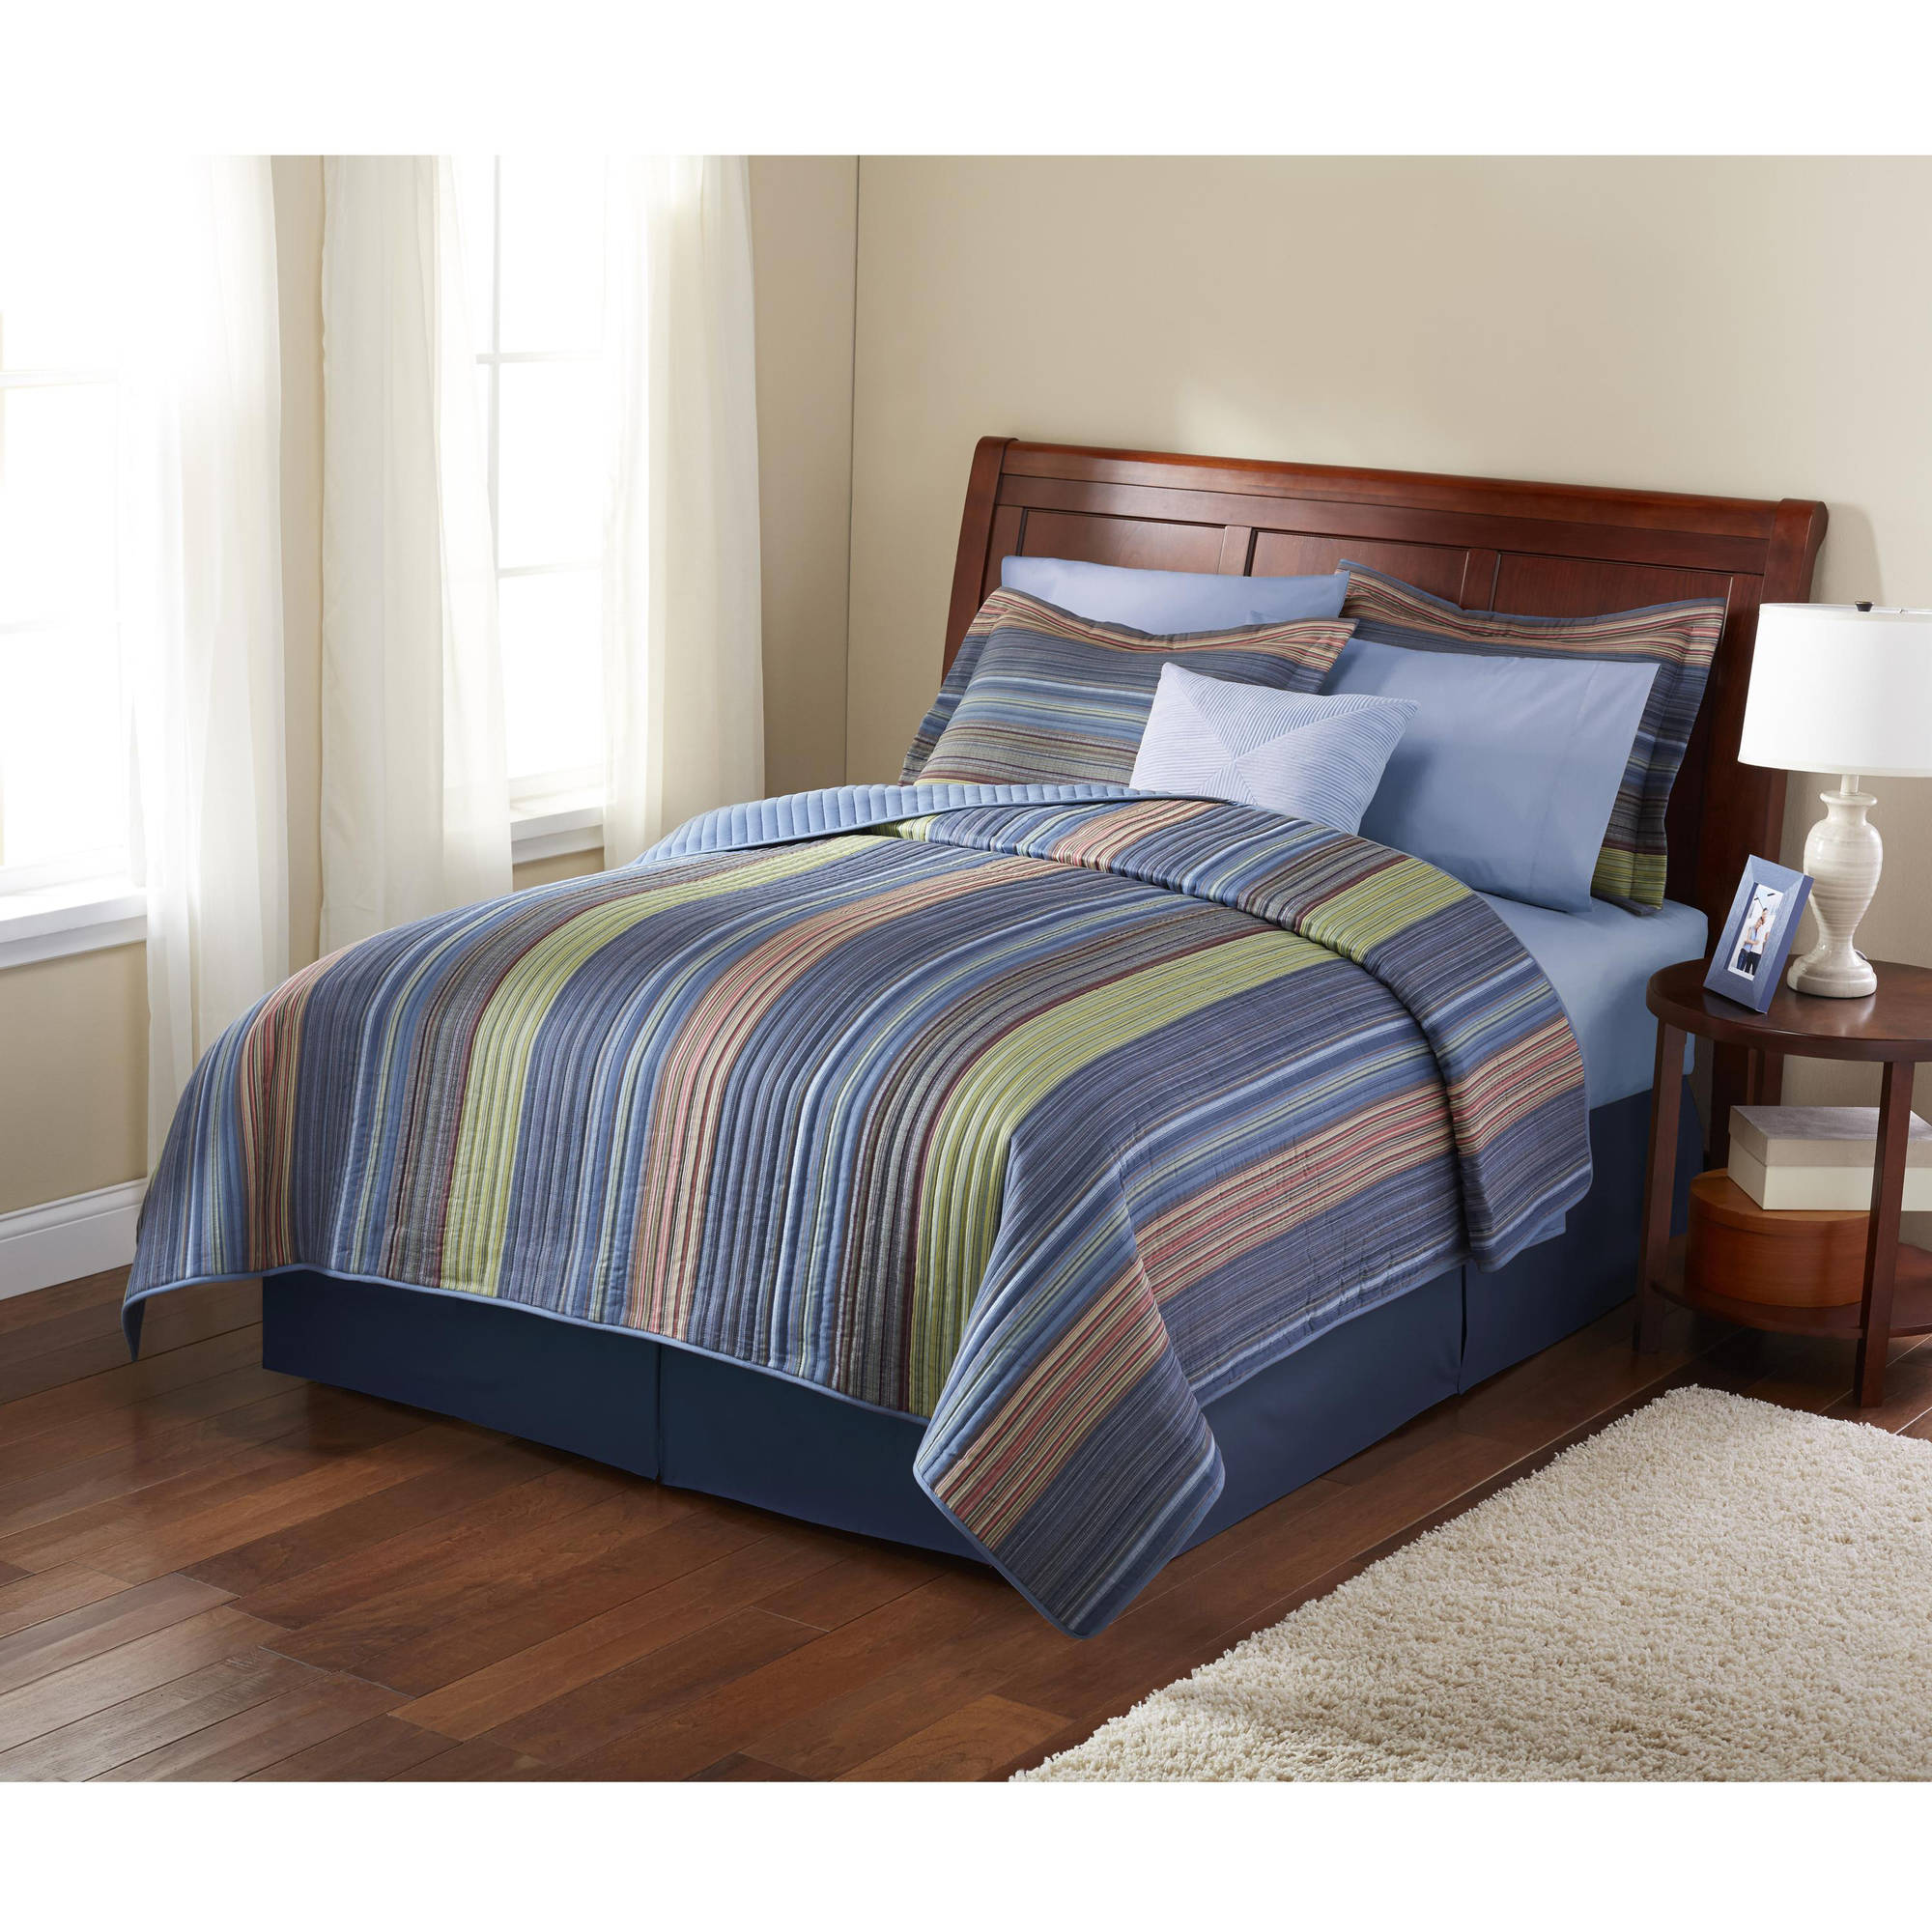 Mainstays Aztec Stripe Printed Quilt, King by